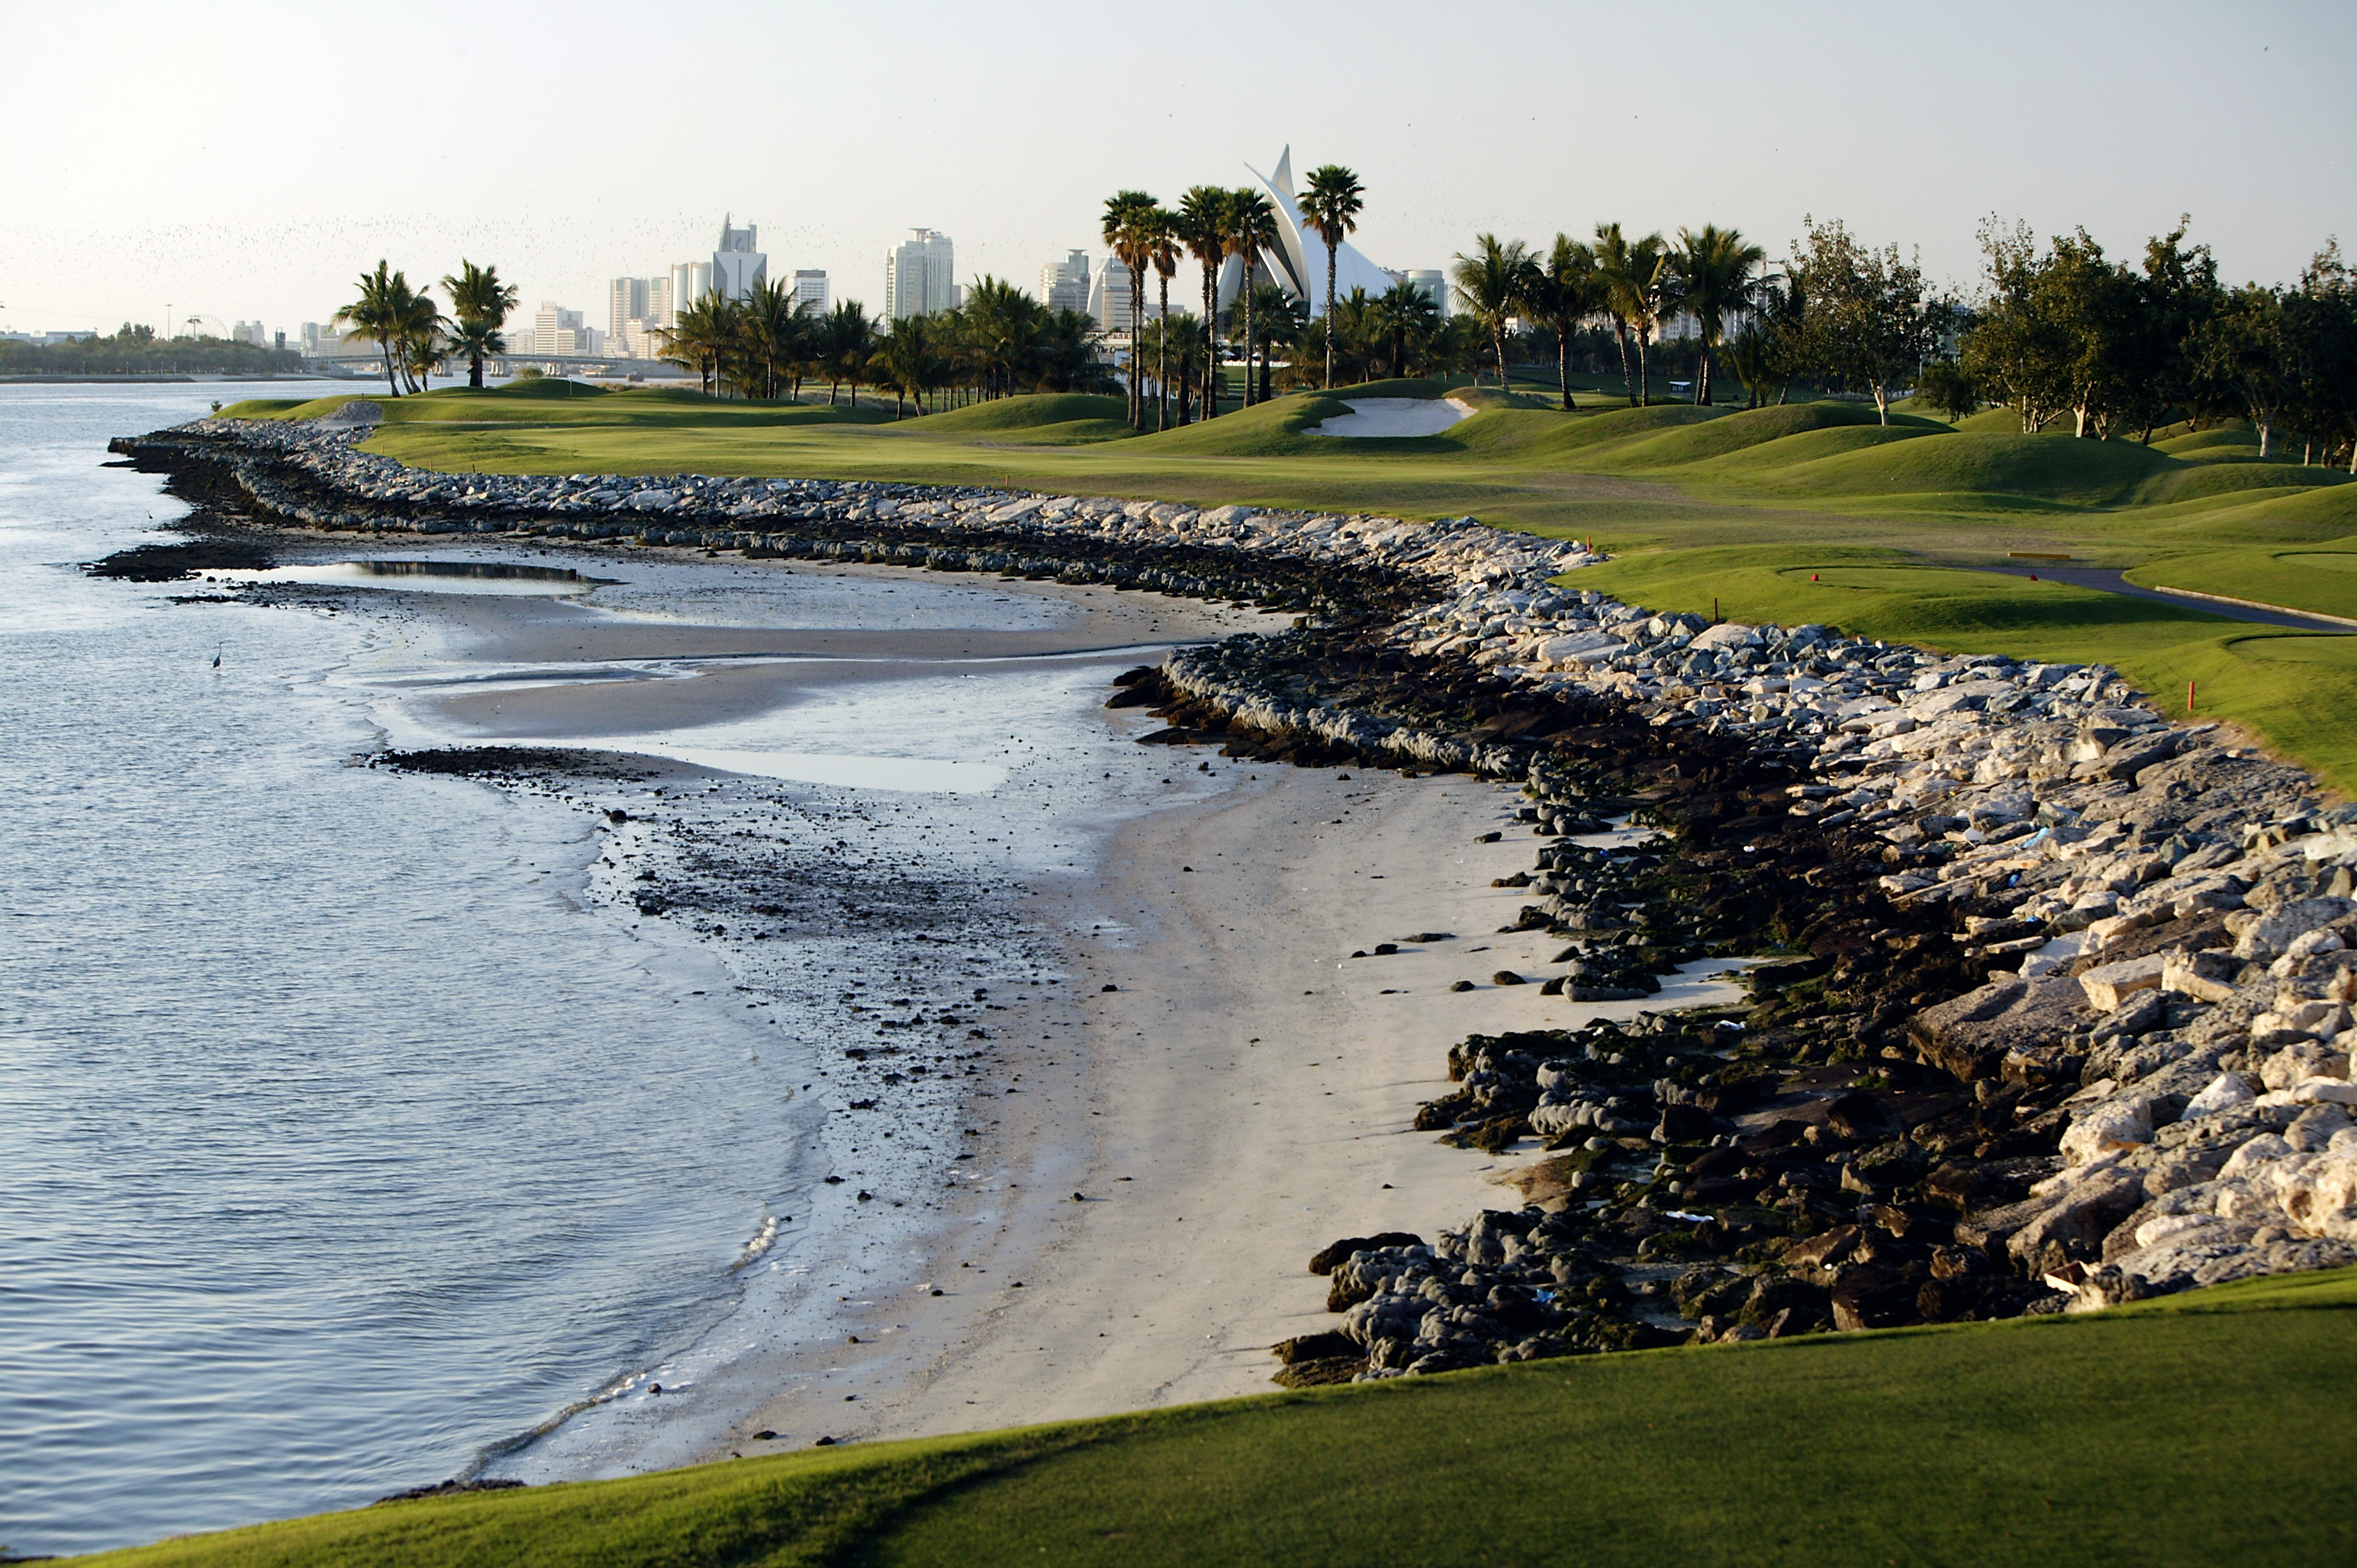 Adjacent to the Park Hyatt Dubai, Dubai Creek furnishes a superior par-3 course—Rory McIlroy has sampled it—and a totally fun championship 18. The finish is world-class, with the 354-yard 17th and the 421-yard 18th a pair of riveting par-4s that skirt the wide, boat-filled Dubai Creek. Behind the 18th green is one of golf's most distinctive clubhouses, which resembles the sails of an Arabic dhow.